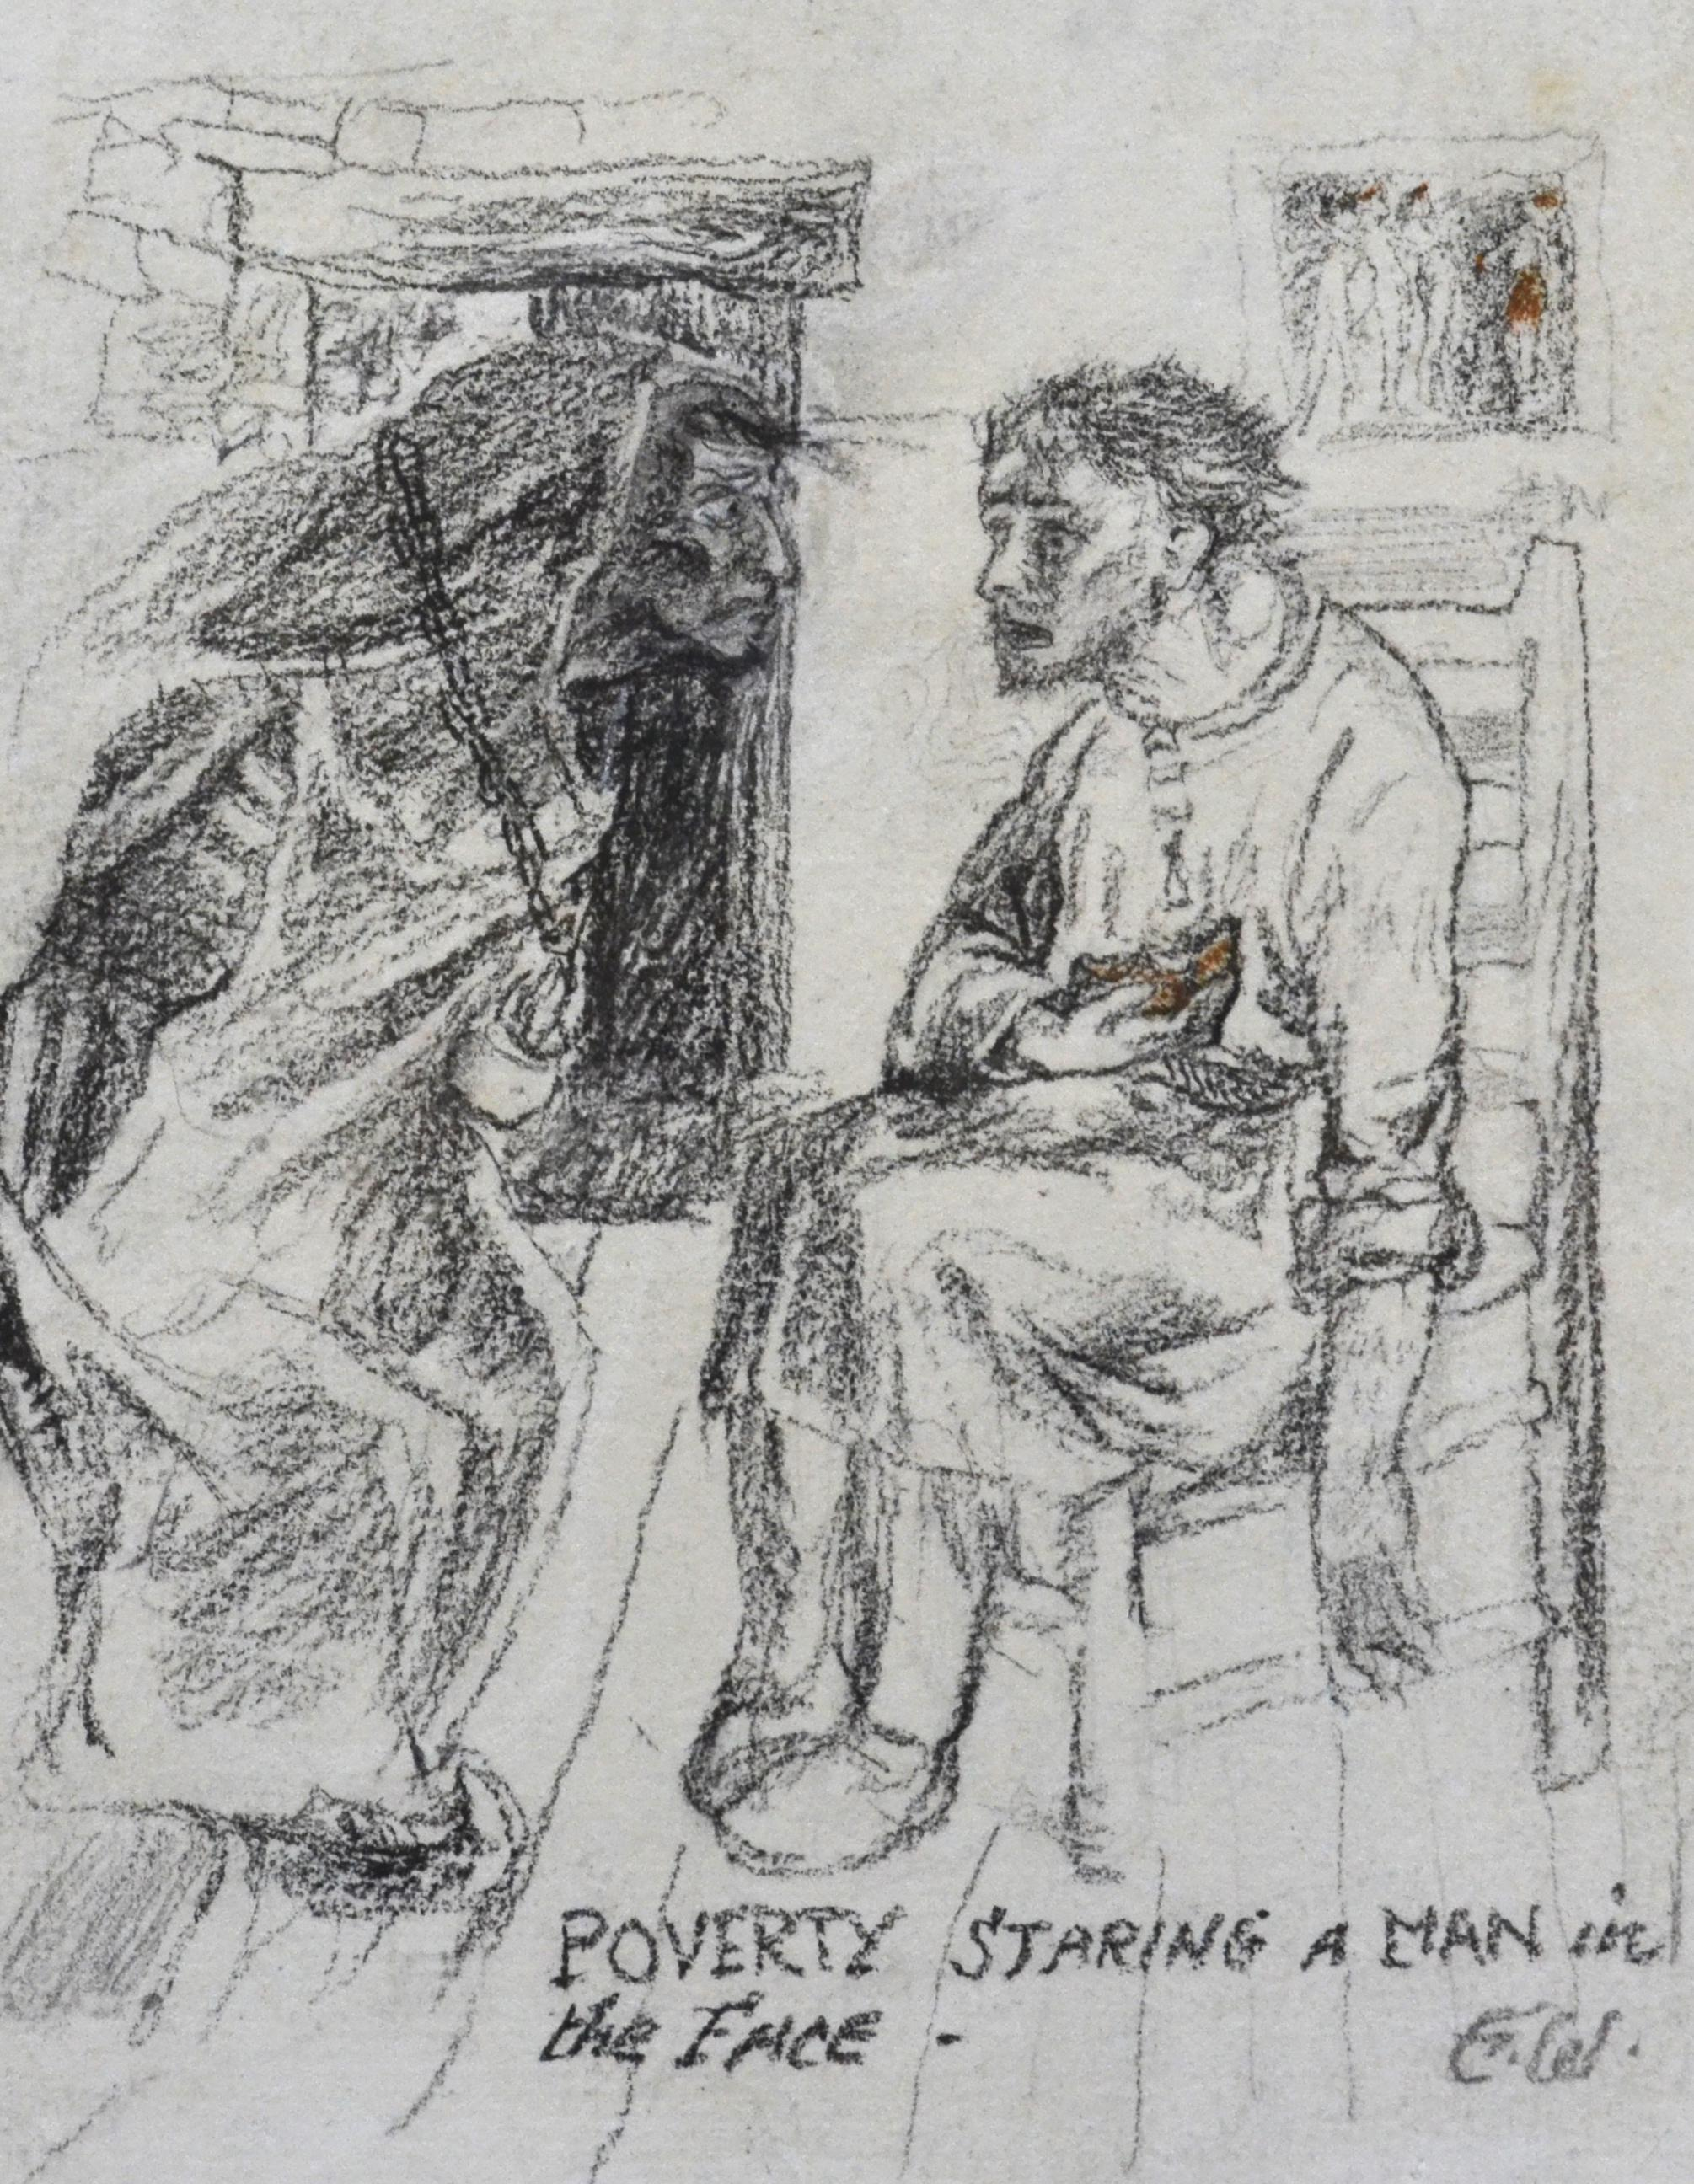 Poverty Staring a Man in the Face - British Arts & Crafts drawing, circa 1900